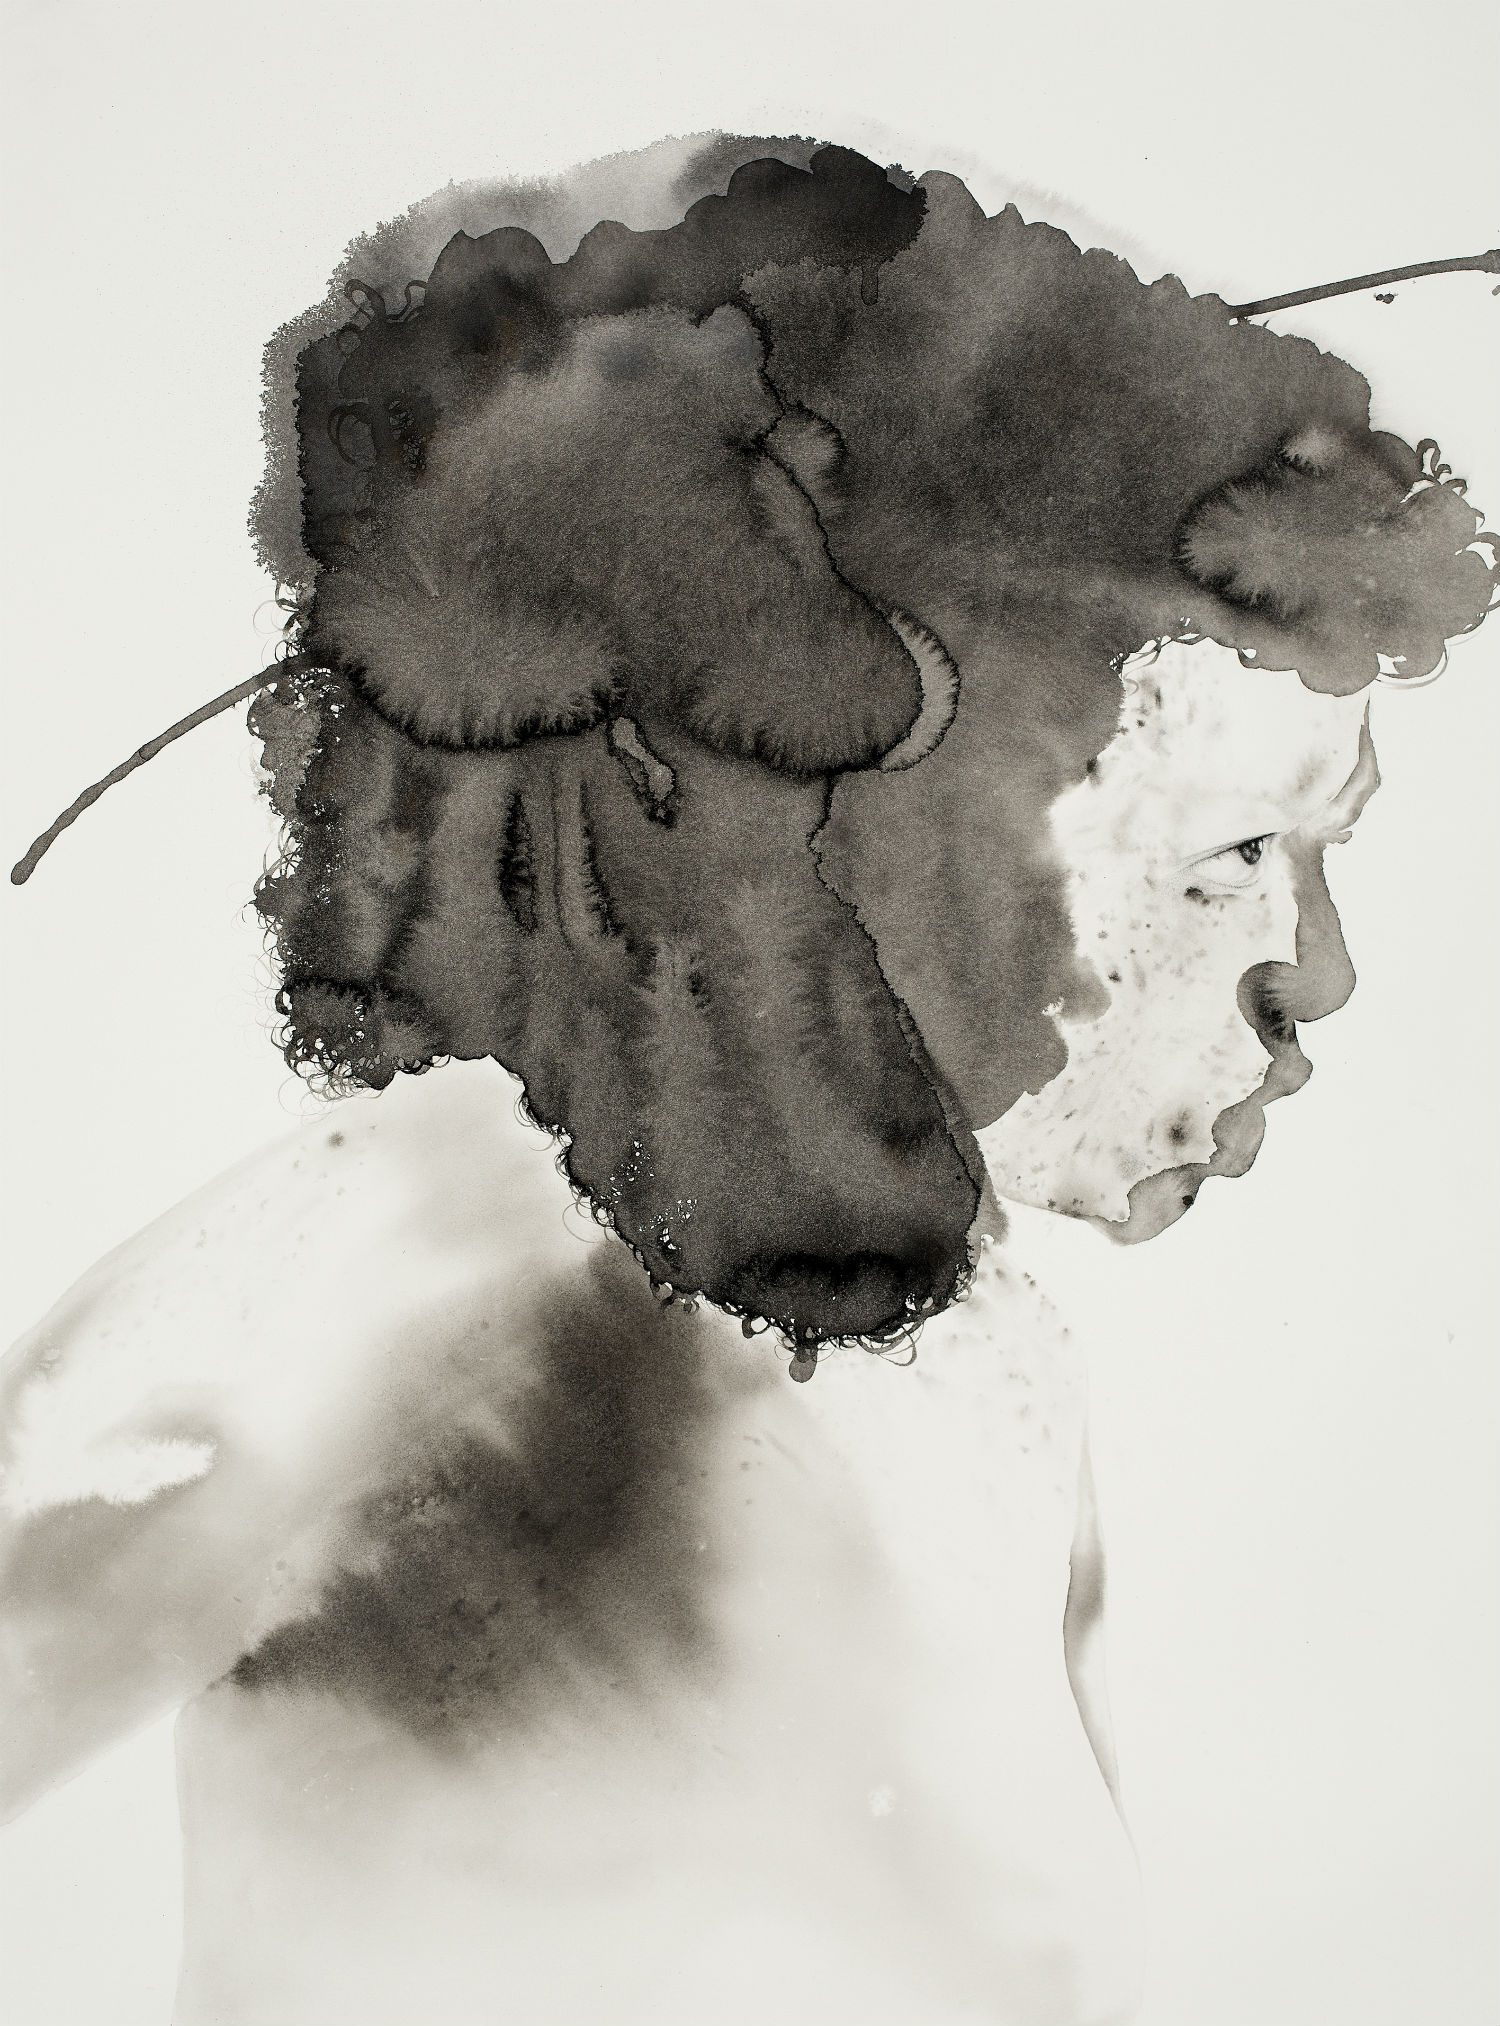 samantha wall illustration art black white